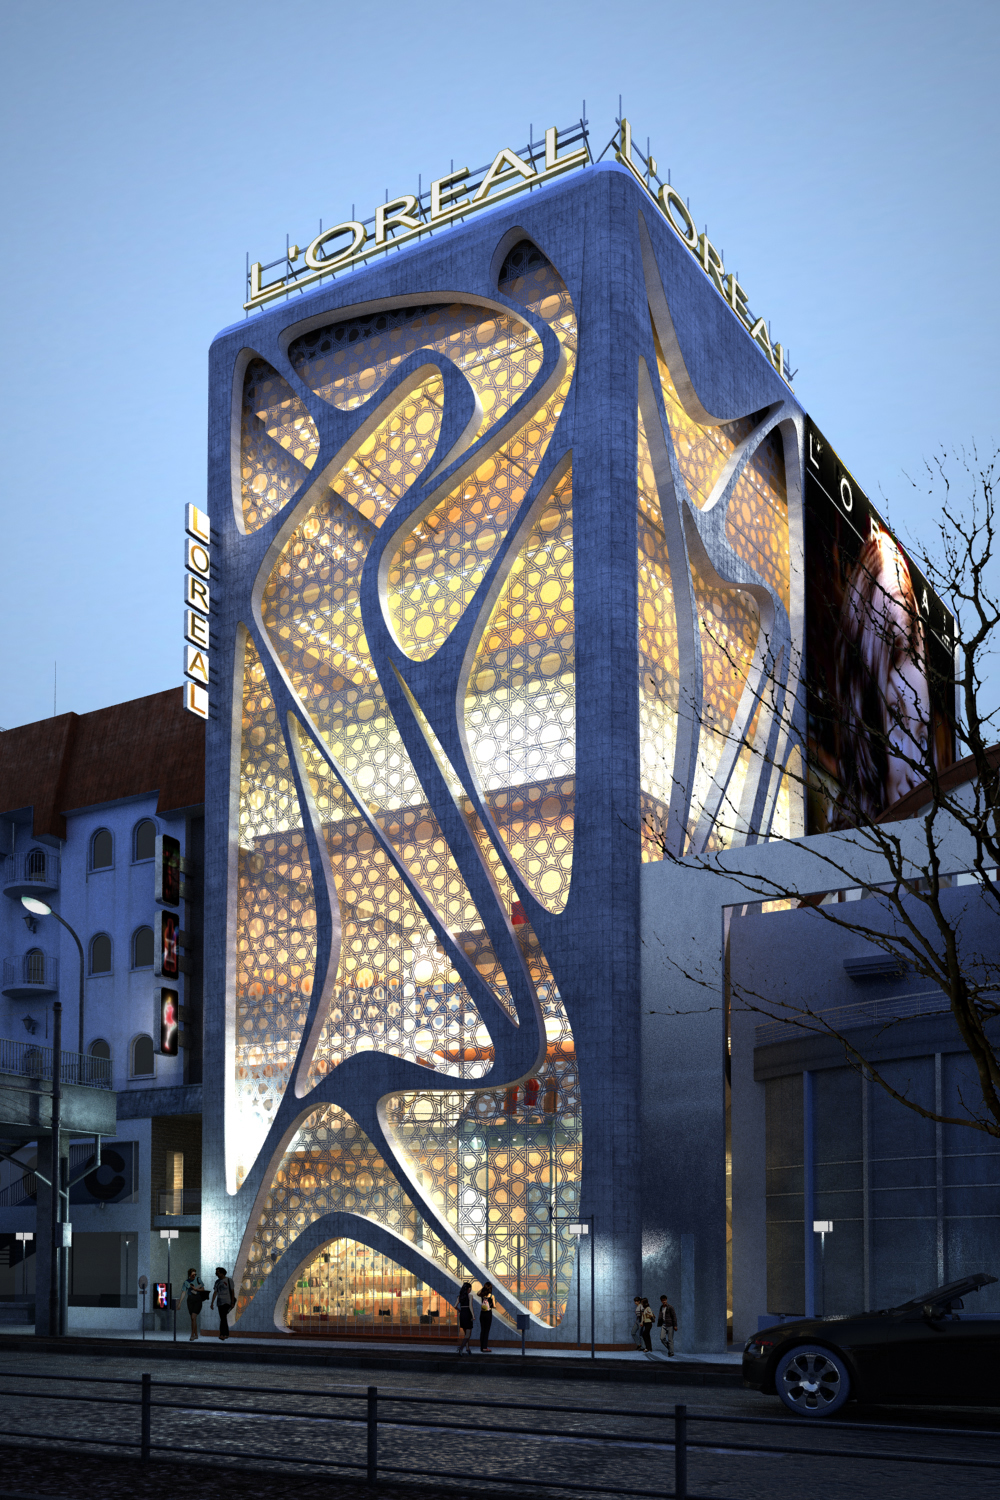 World of architecture new l 39 oreal office building by iamz for Architecture building design